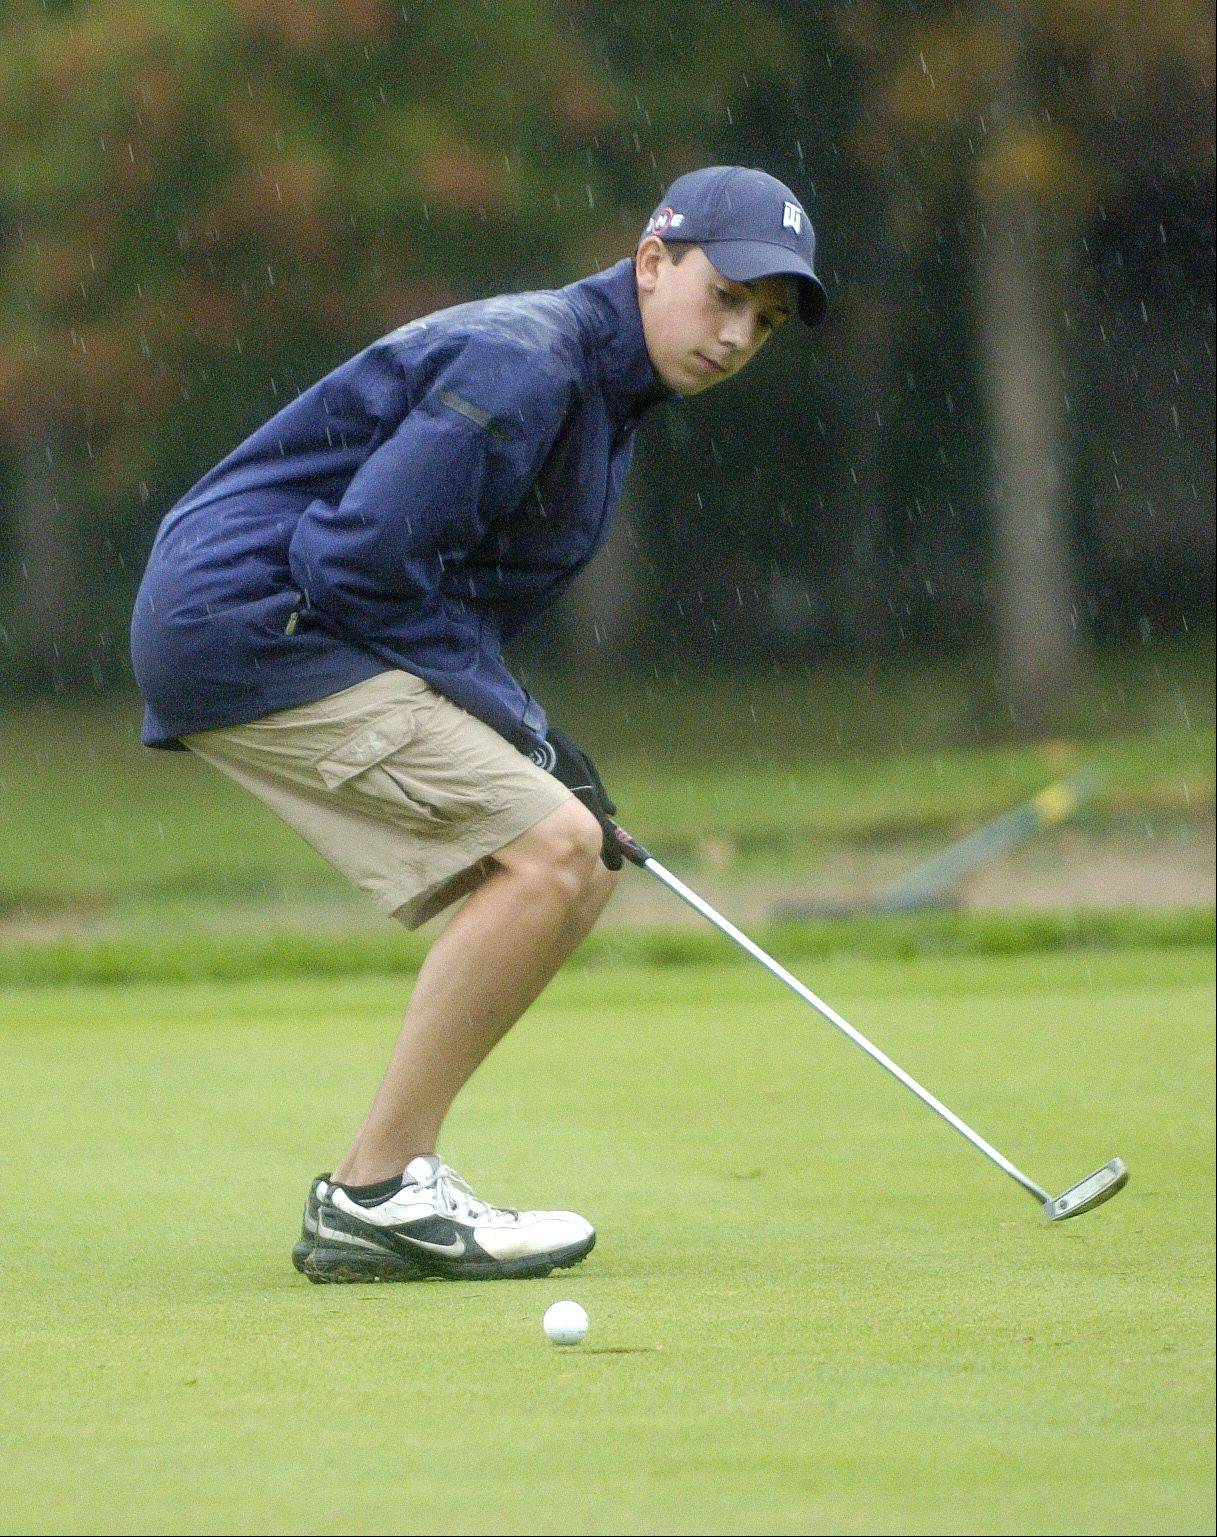 West Aurora's Dean Lavery puts some English onto his 16th hole put. Rain briefly halted play in Bartlett Thursday at a DuPage Valley Conference boys golf tournament at Bartlett Hills Golf course.